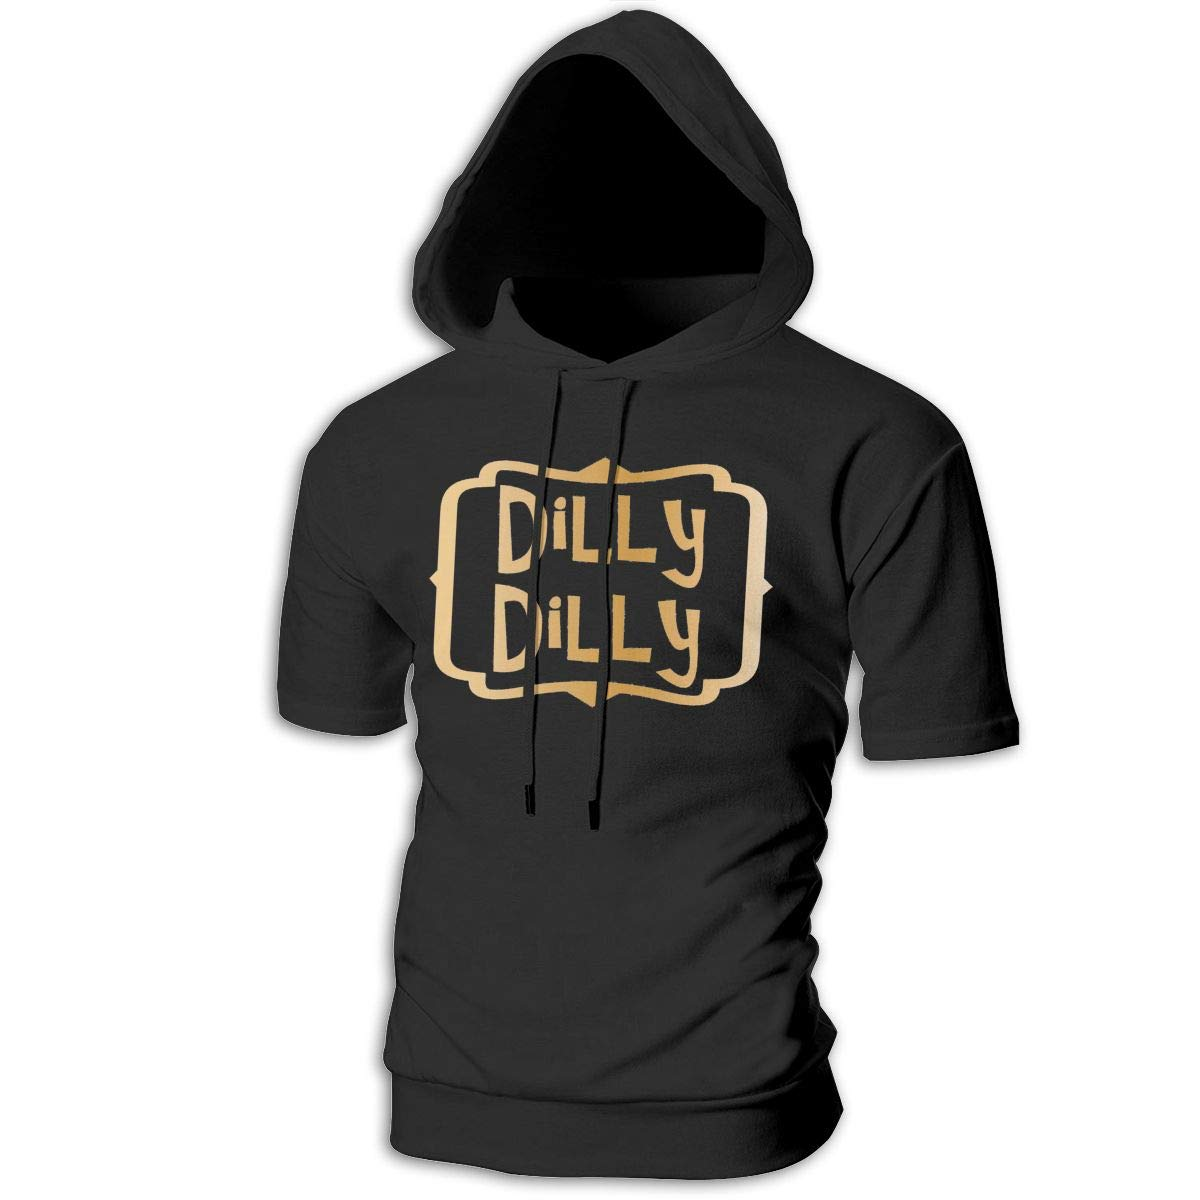 MZ-HY Dilly Dilly Mens Cool Short Sleeve Hoodie Pullover Soft Hooded T-Shirt